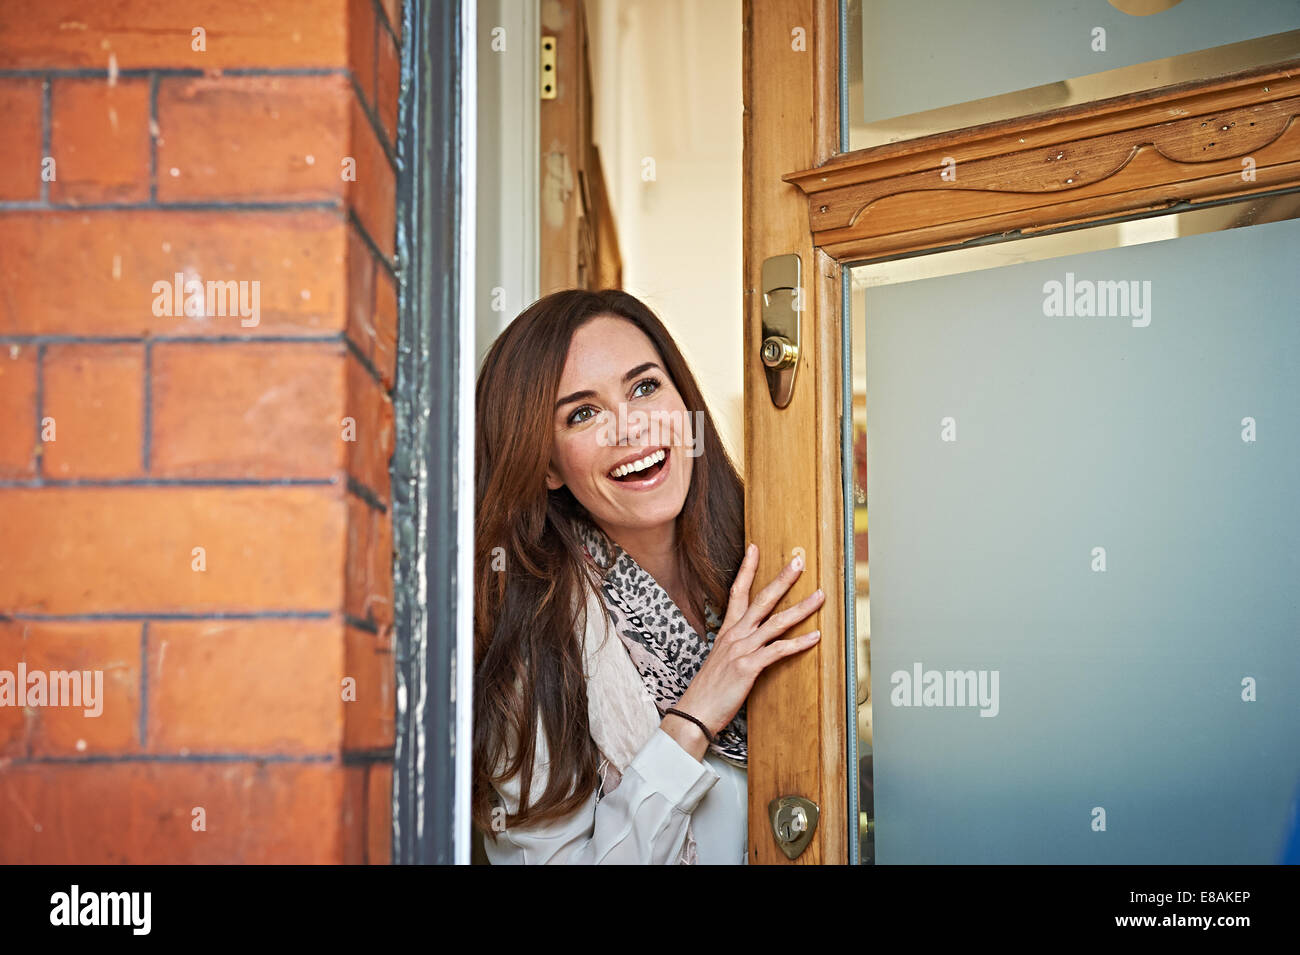 Woman opening front door - Stock Image